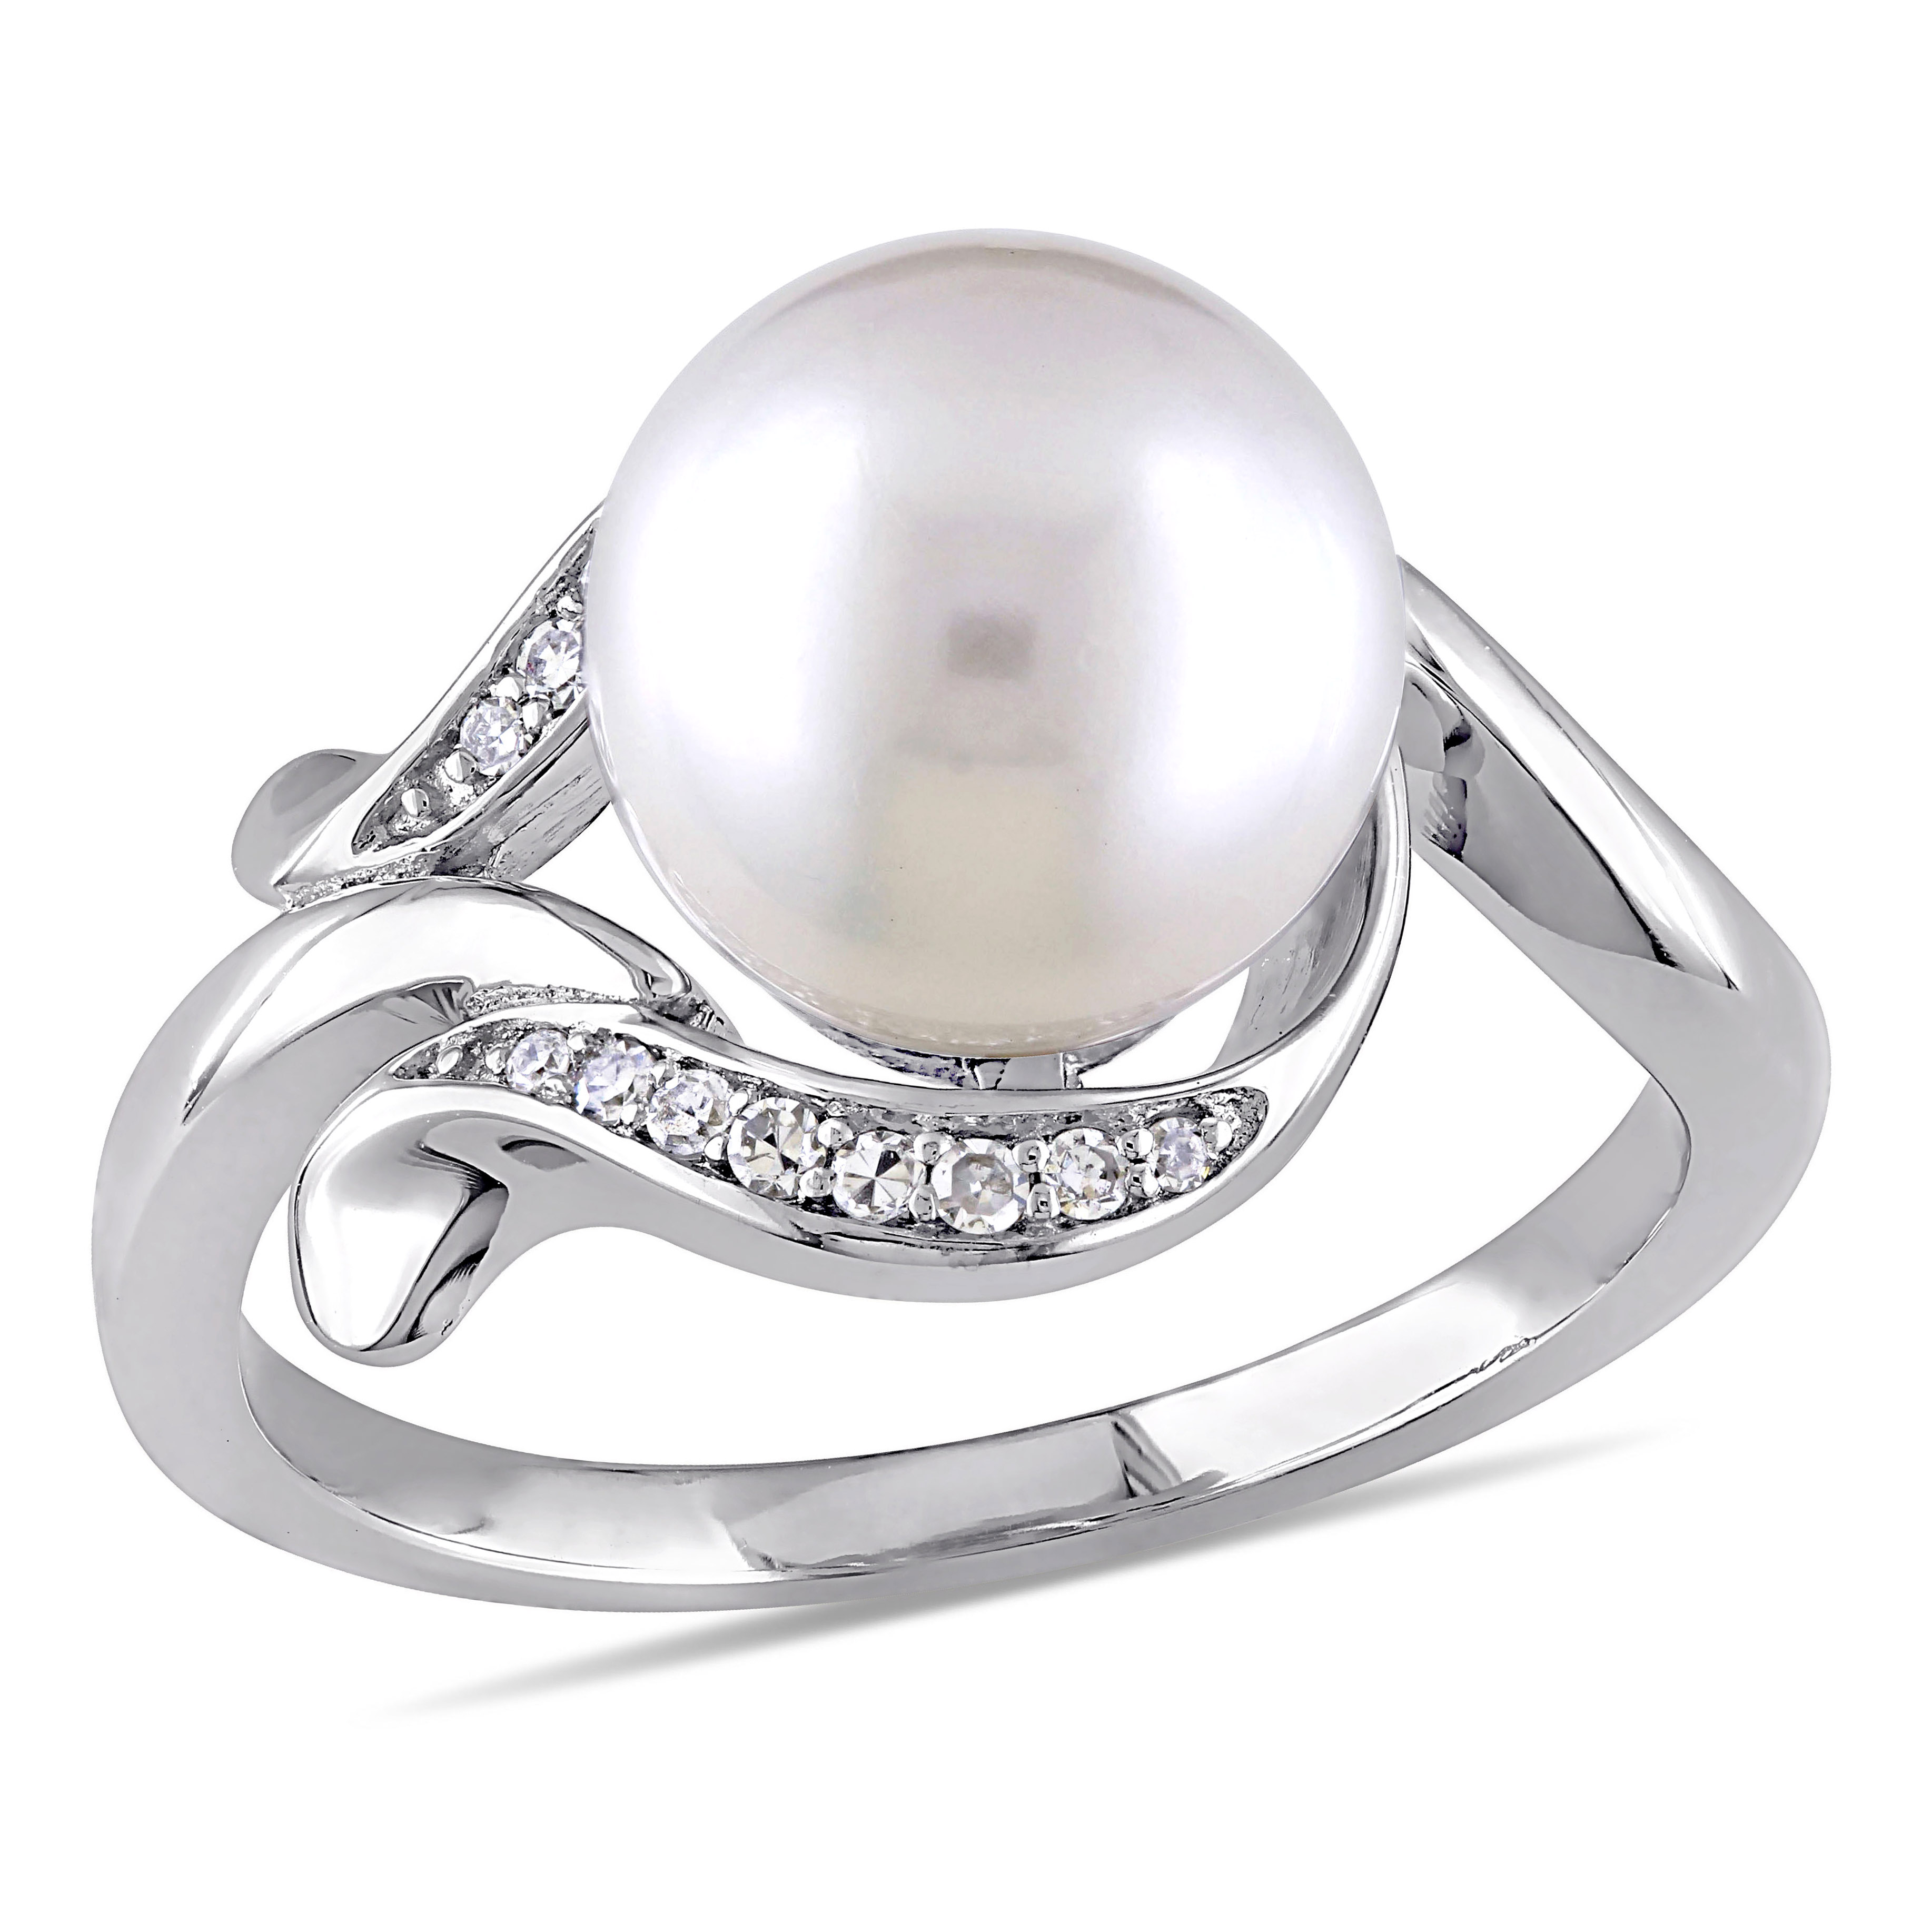 BAGUE OR BLANC PERLE CULTURE &7 PTS DIA